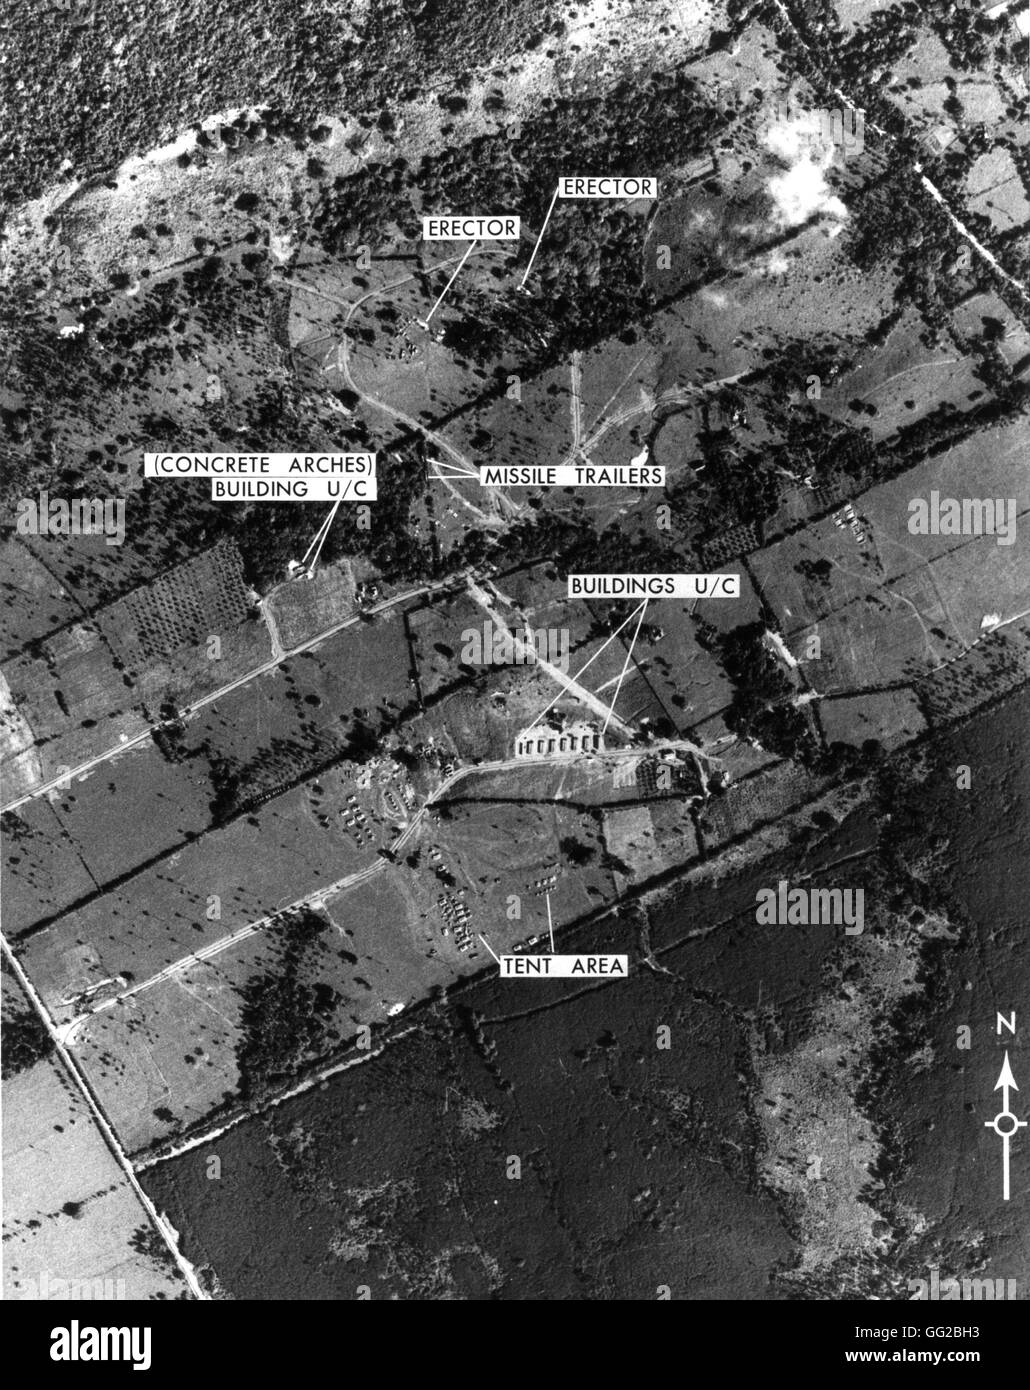 cuban missiles crisis san cristobal base within 3 days the launching area is